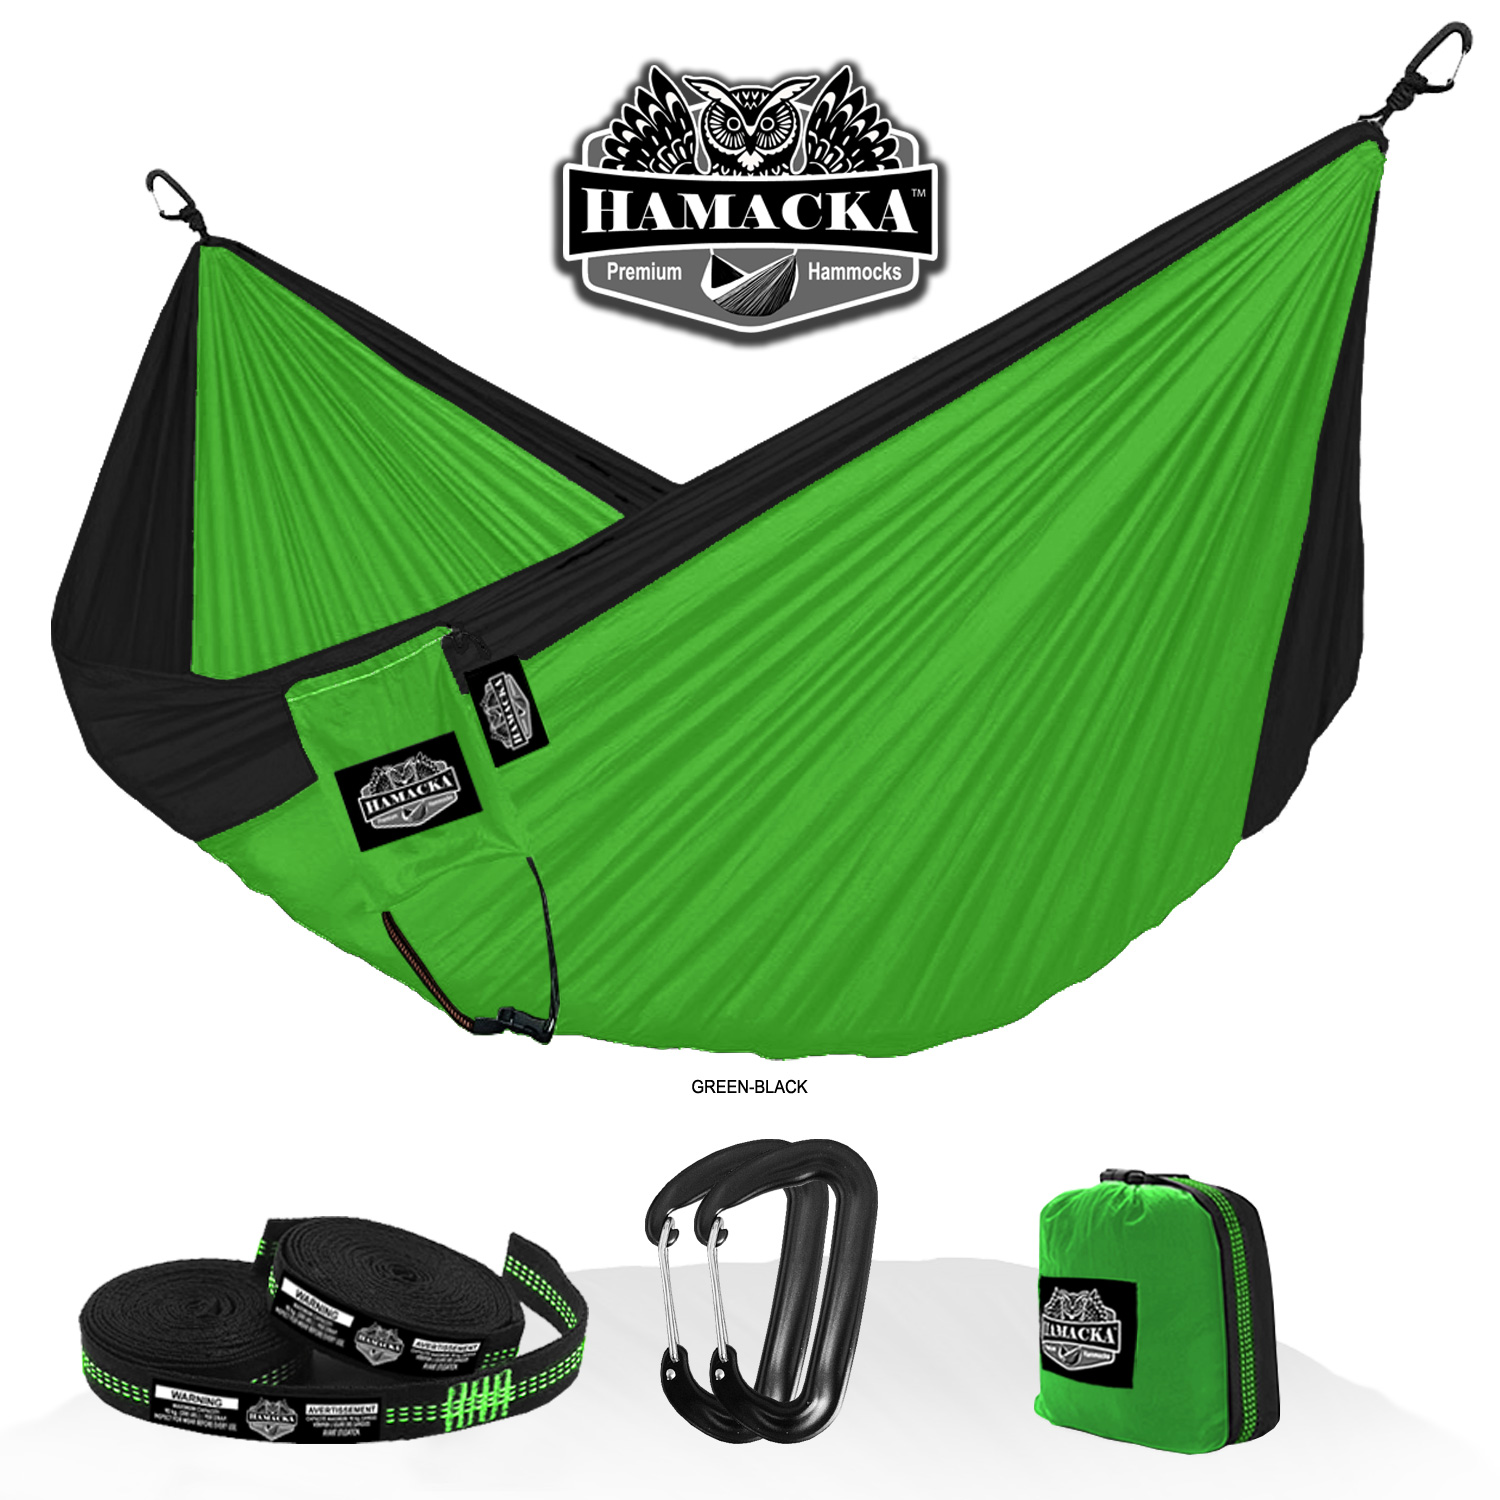 TRAVEL HAMMOCK SET (GREEN)